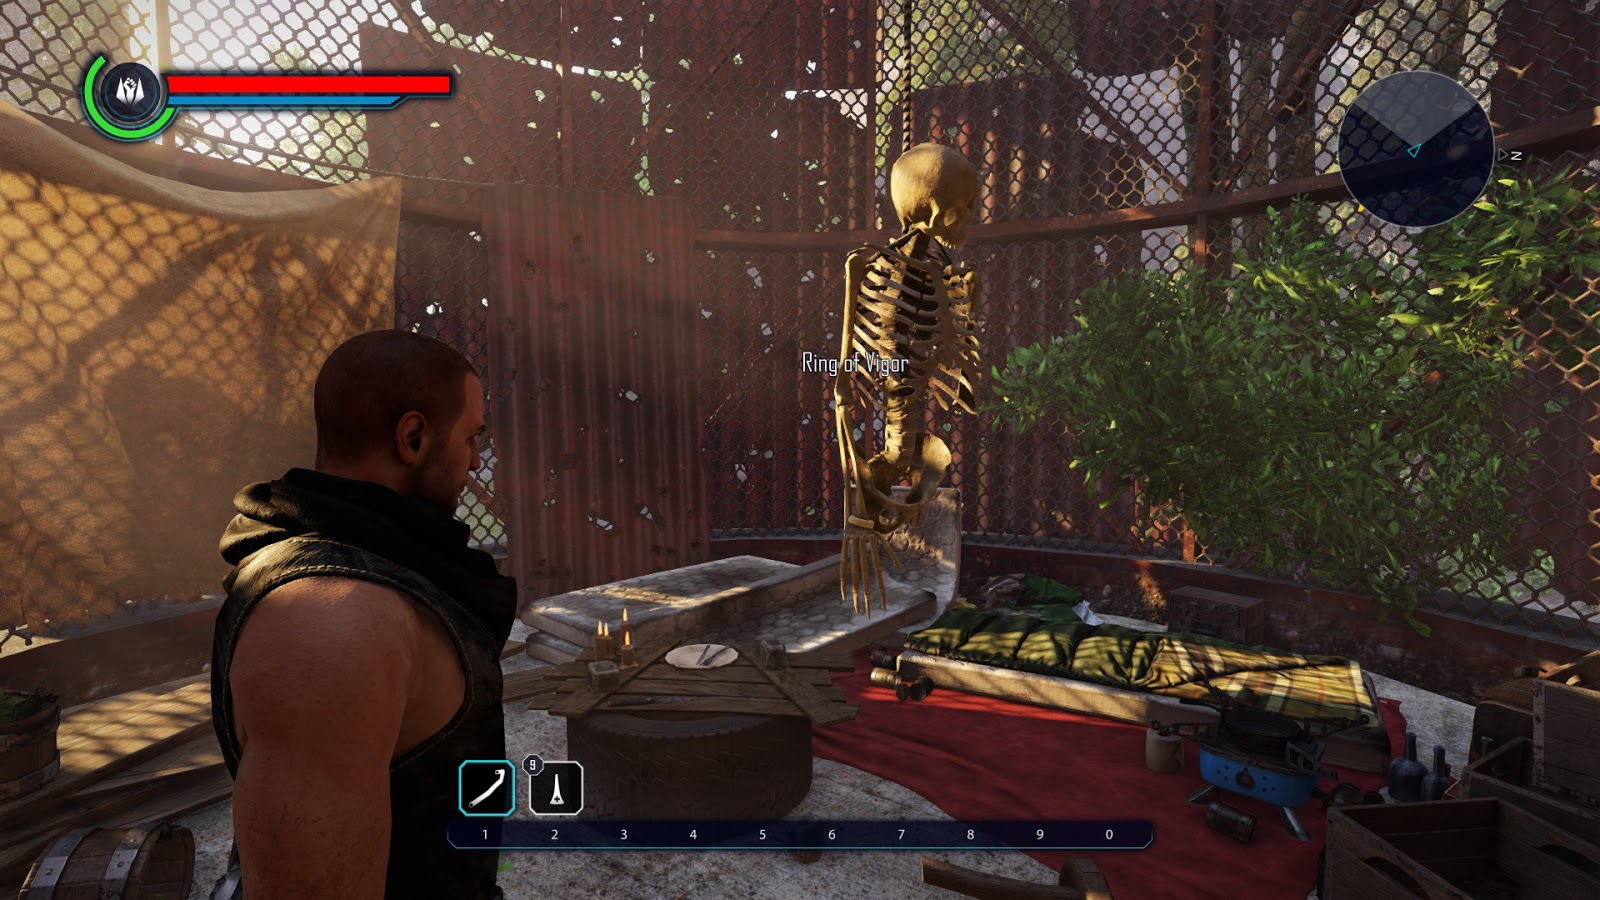 The Nocturnal Rambler: Beginner's Guide to Elex: Tips and Advice